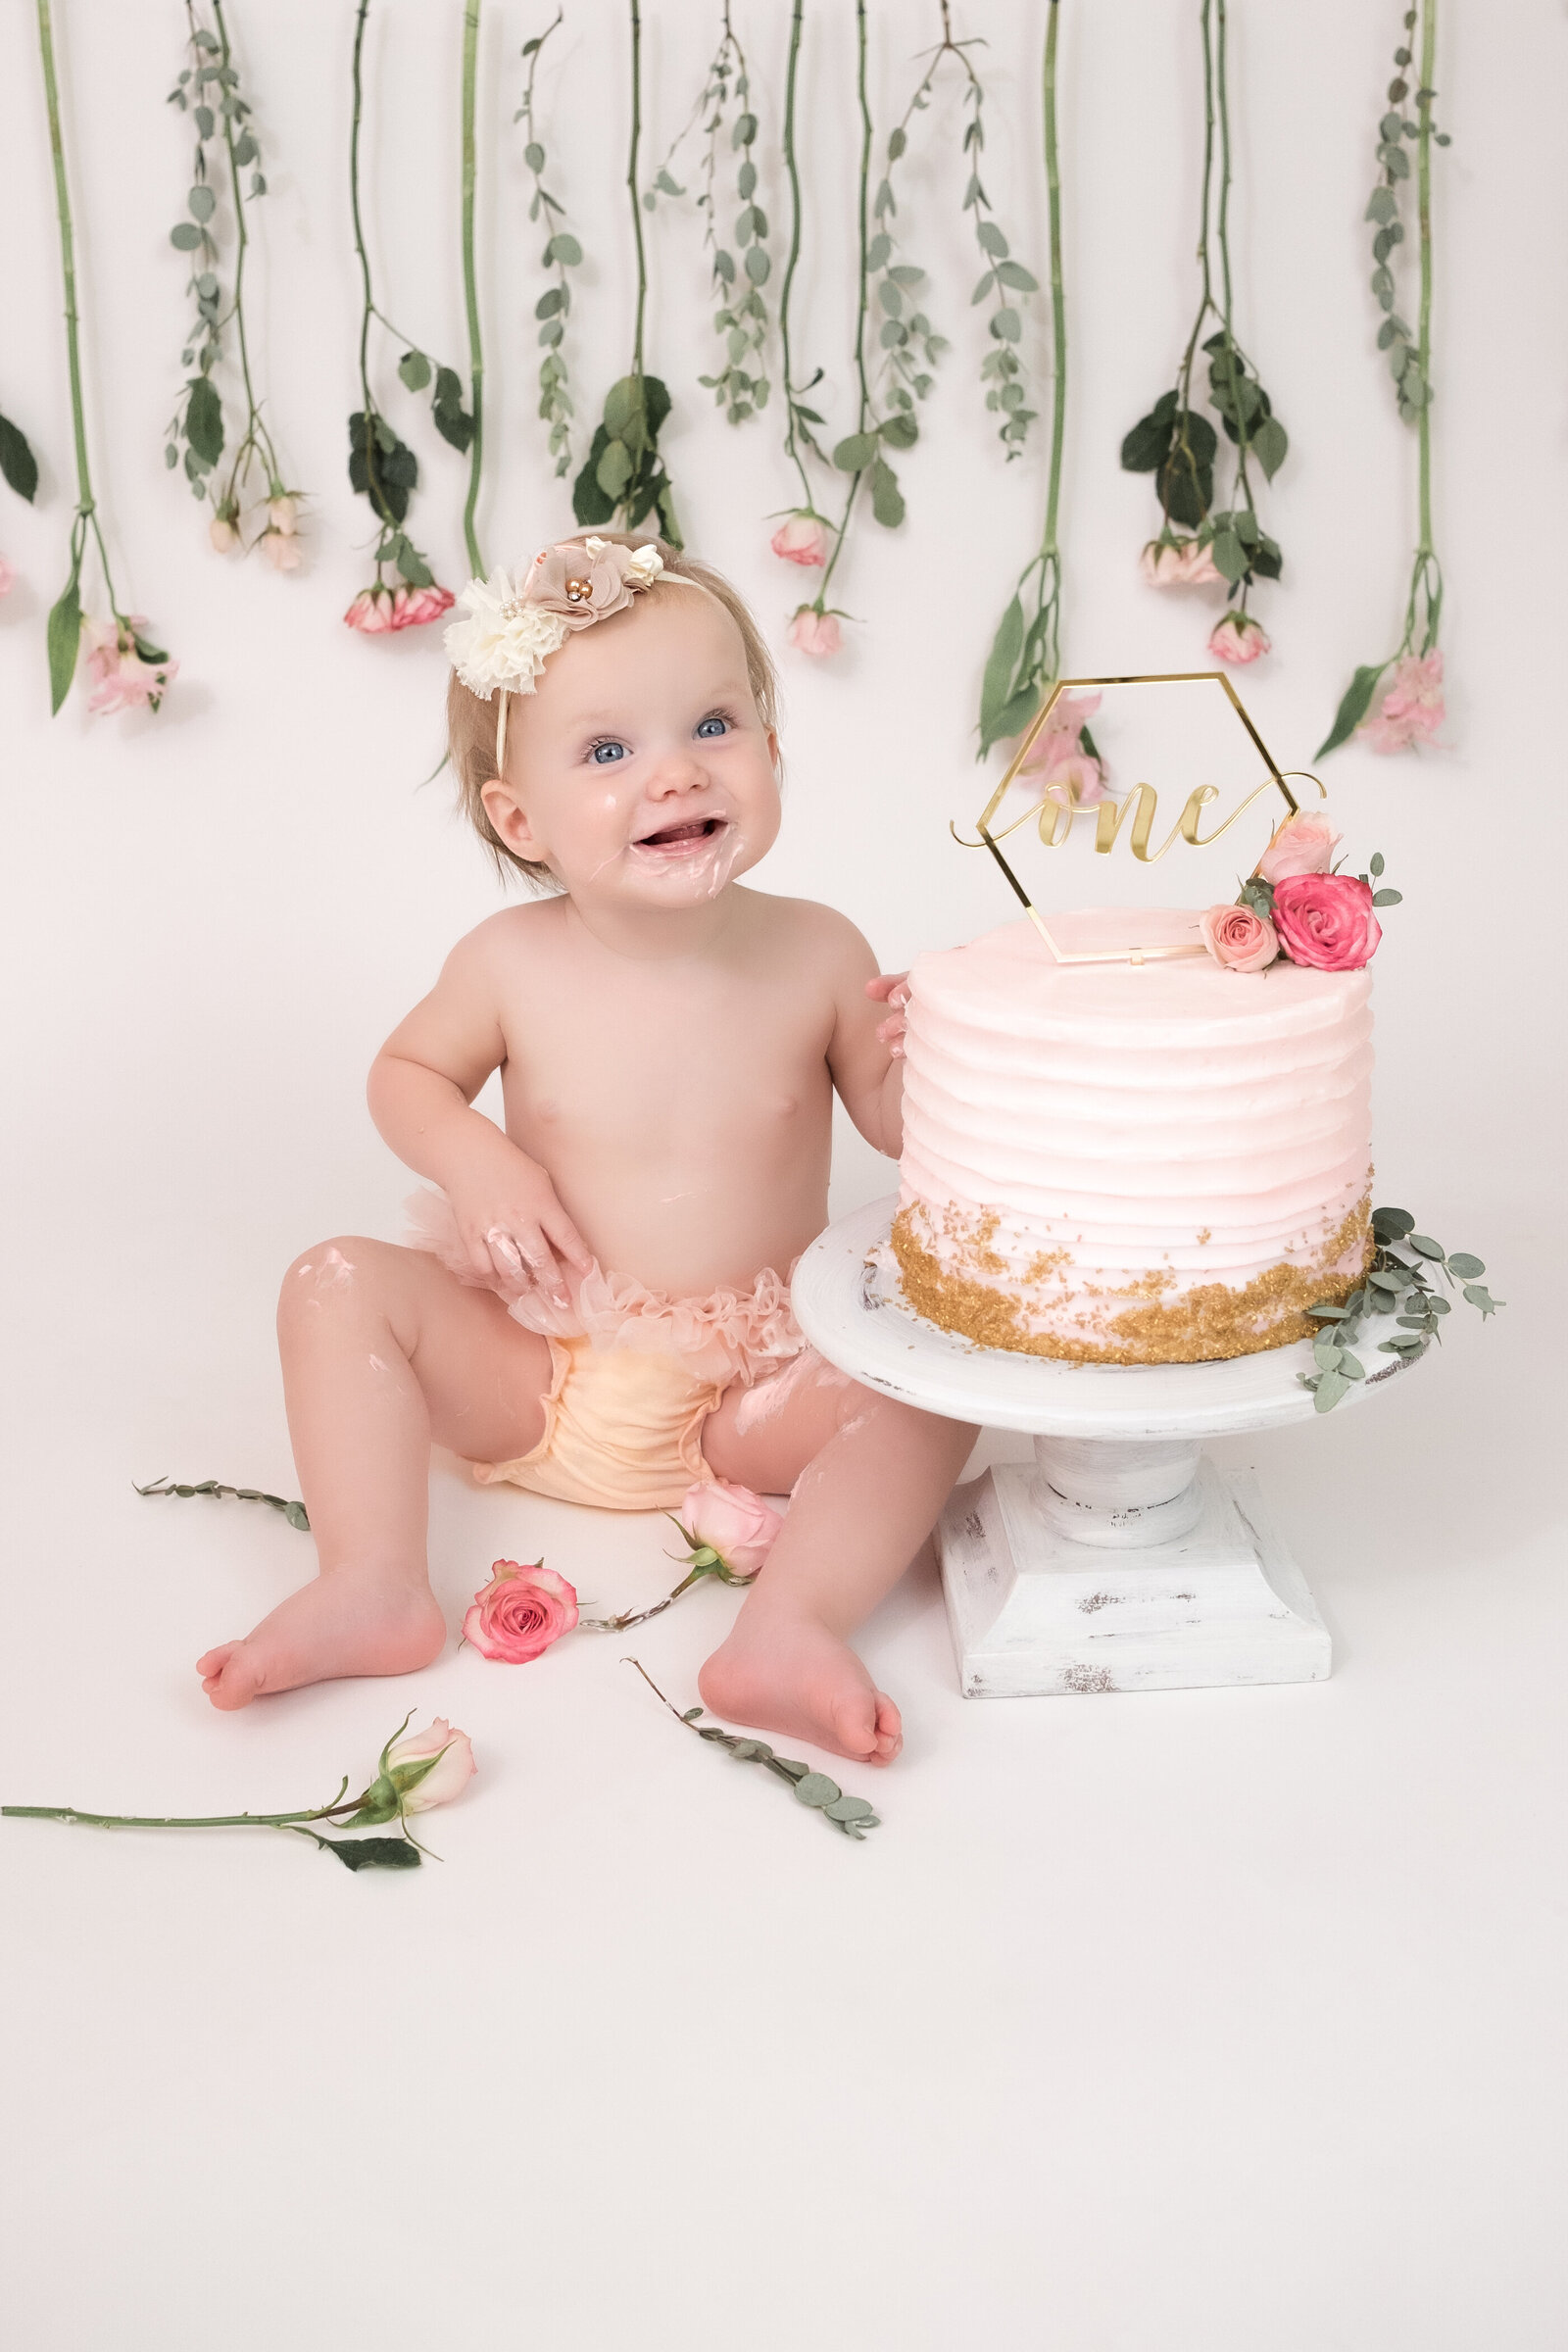 Ava's Cake Smash August 2020-22_PS